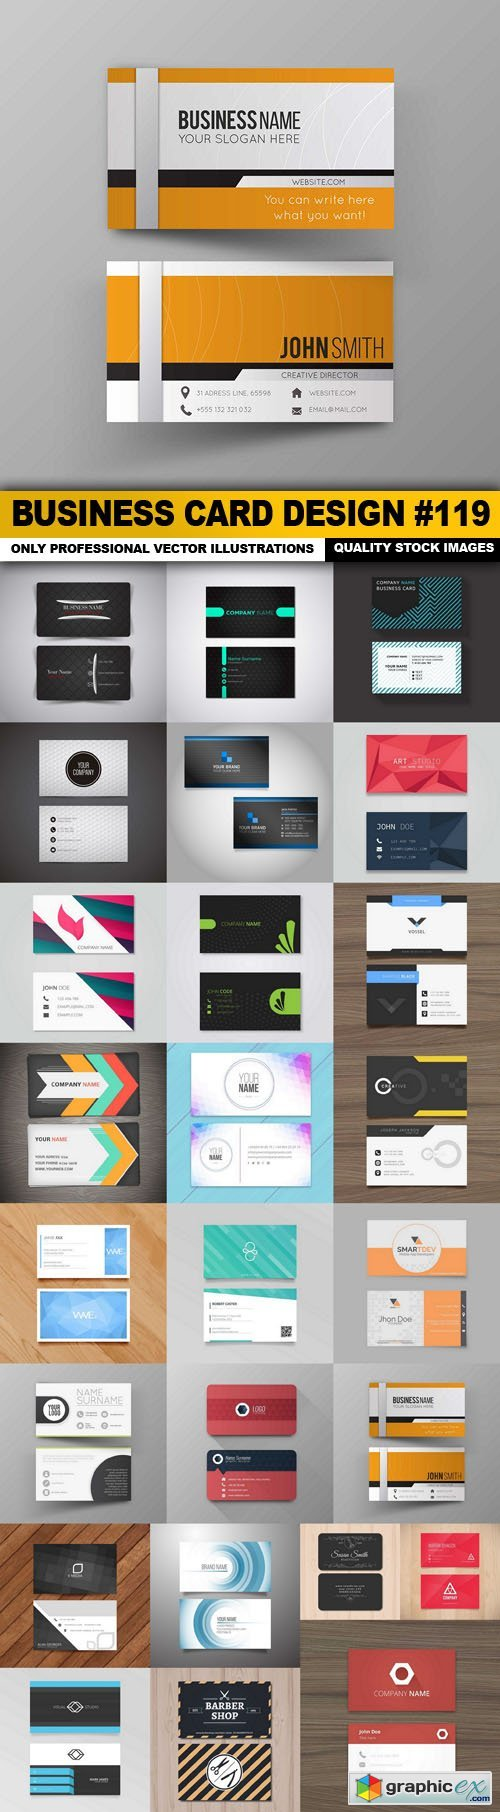 Business Card Design #119 - 25 Vector